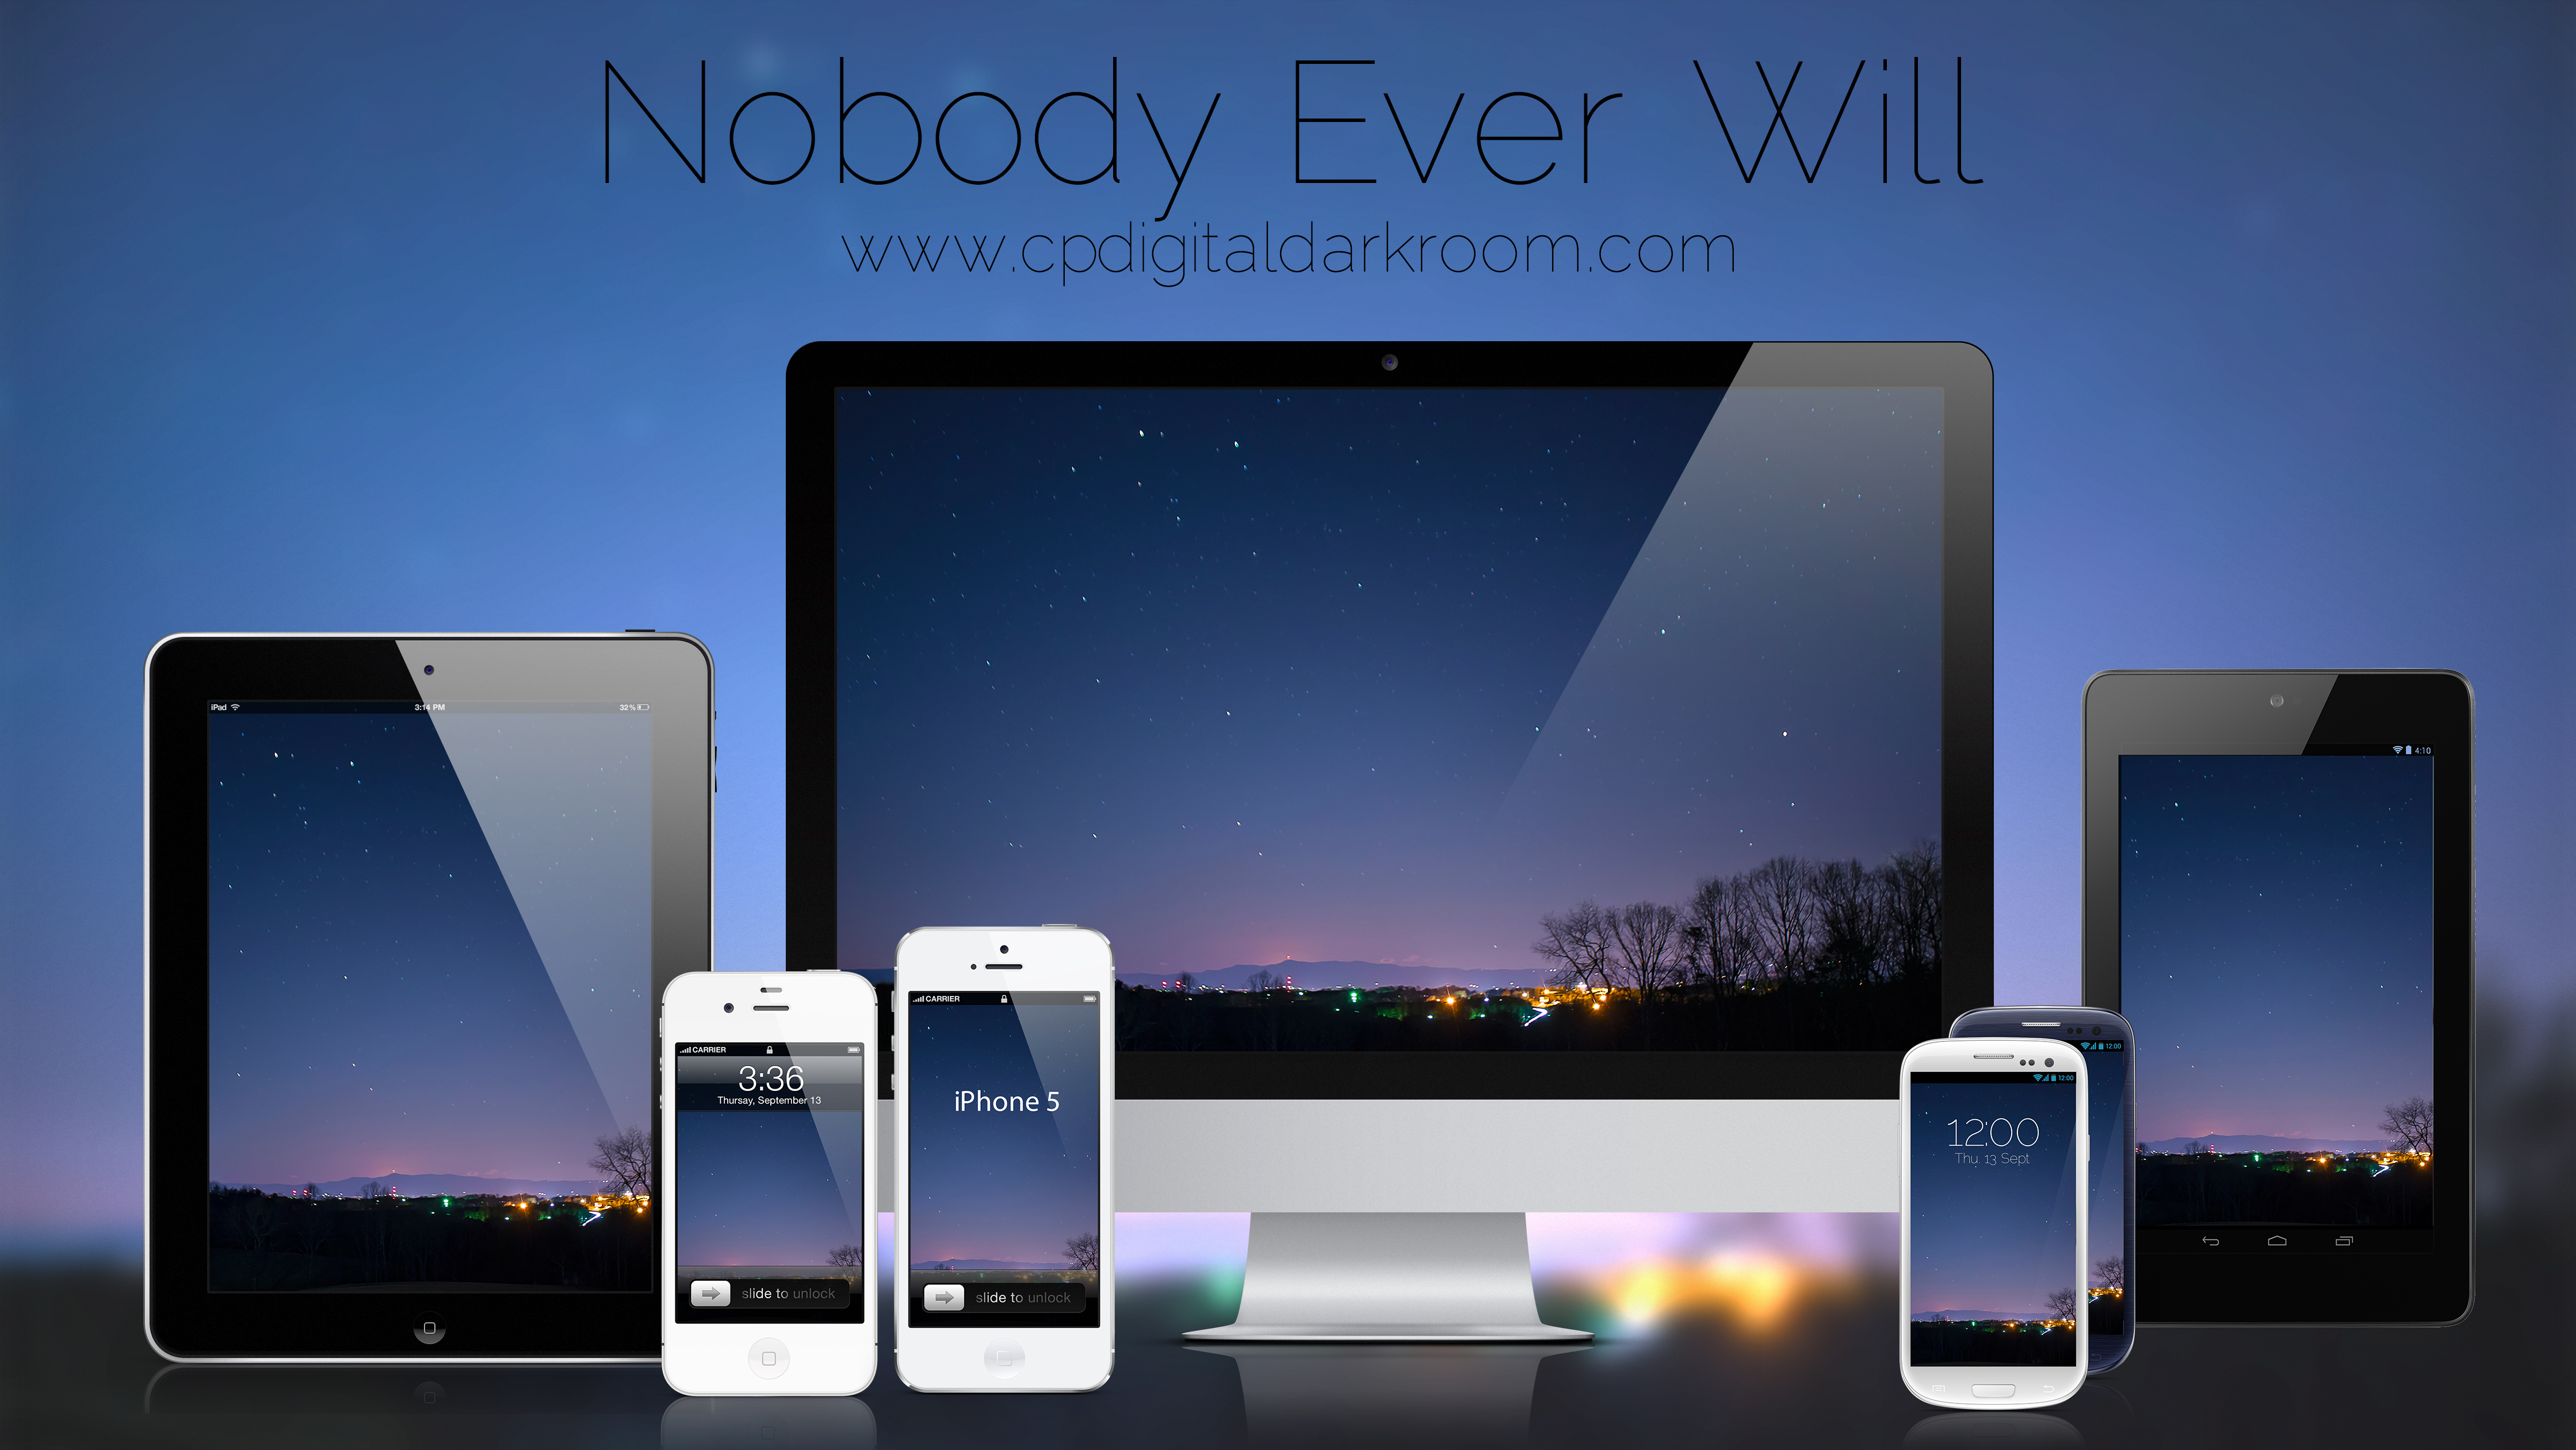 Nobody Ever Will by CPDigitalDarkroom